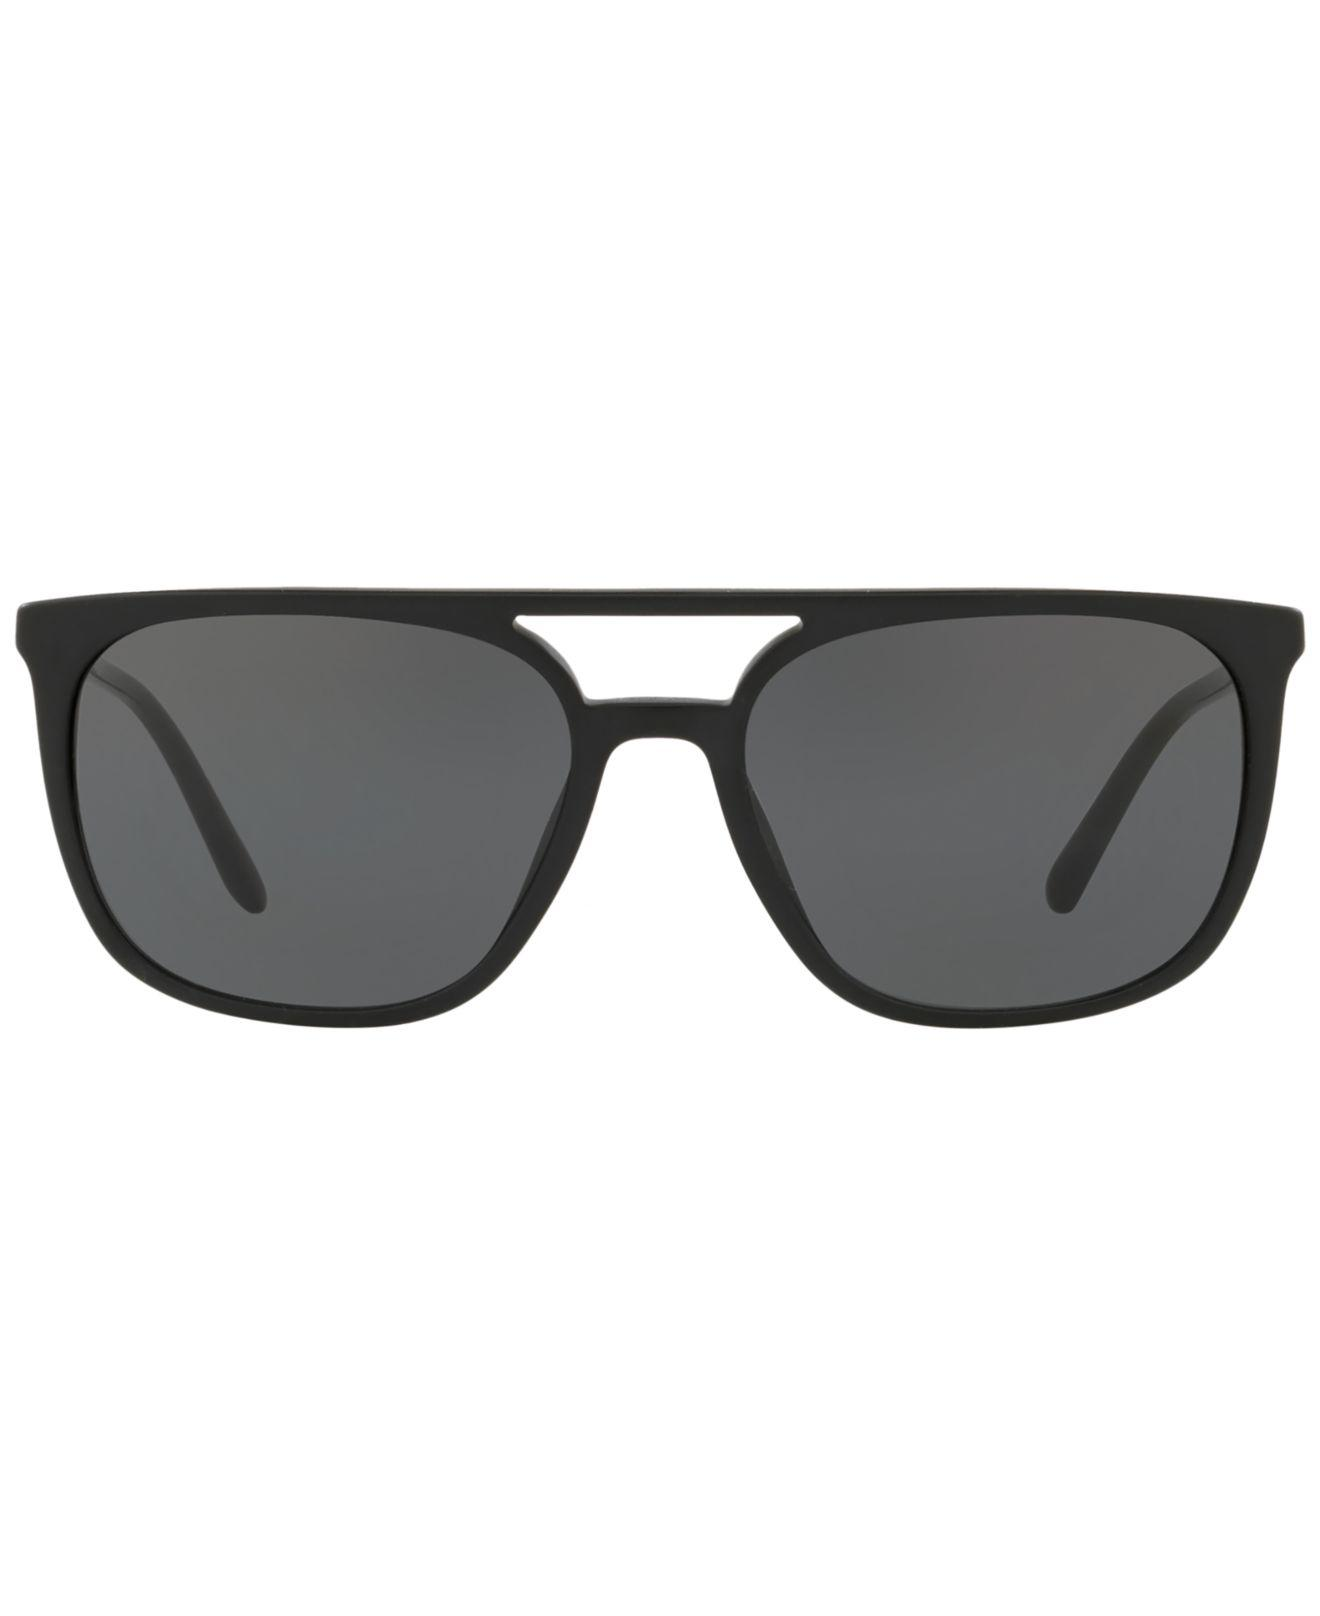 4f240987c6d Lyst - Burberry Be4257 in Black for Men